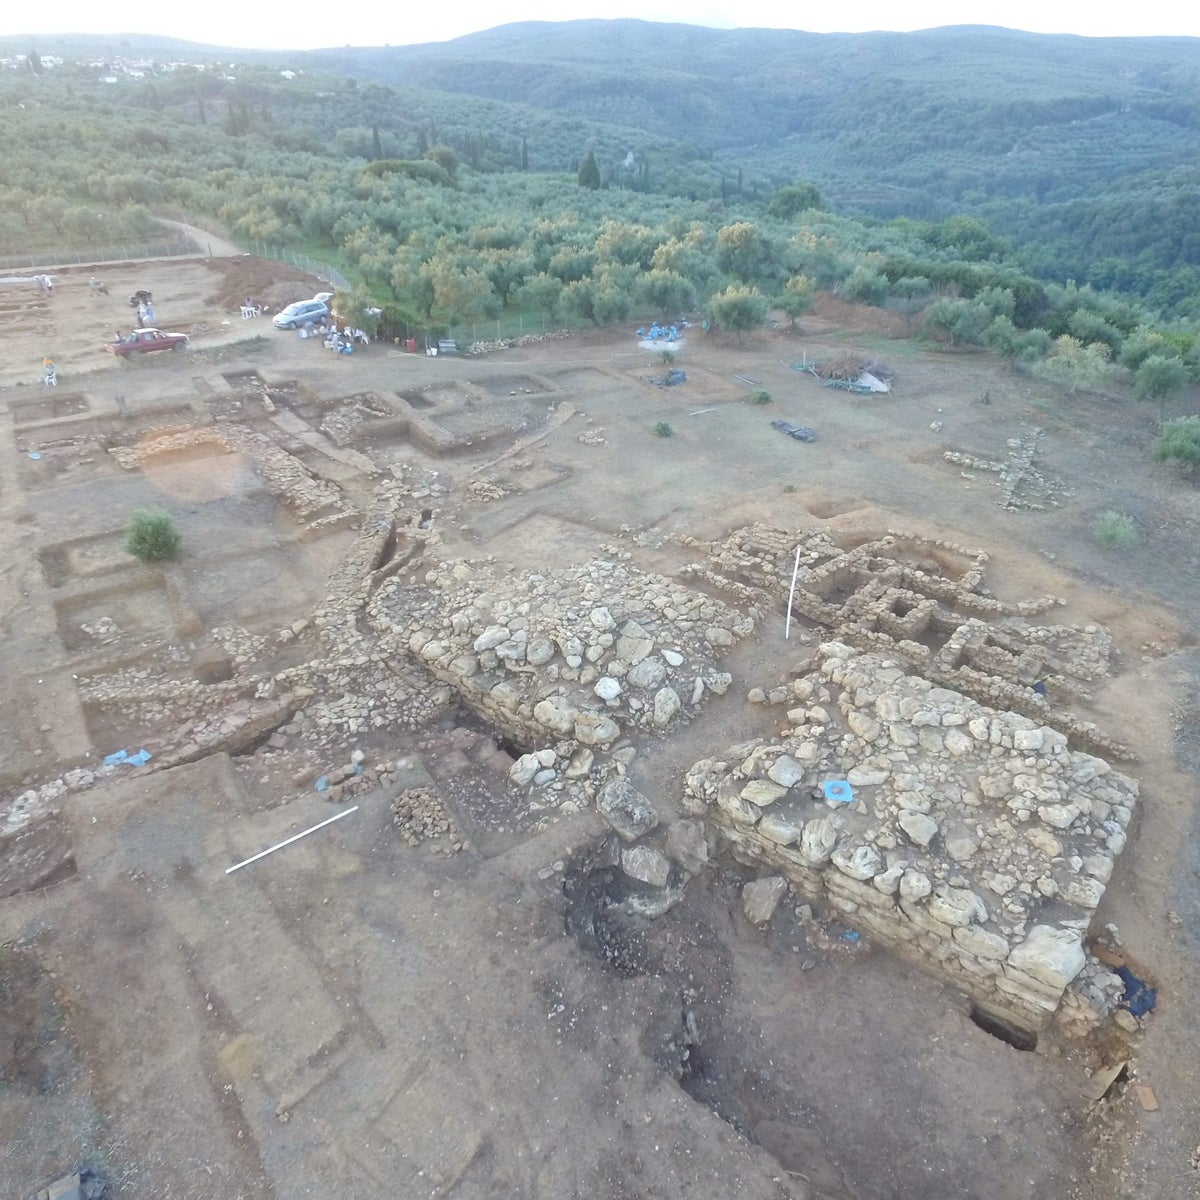 Aerial view of Iklaina: This palace dating to around 3400 years ago shows the city was no backwater, as had been thought, but a powerful Mycaenean-era capital in competition with the Palace of Nestor, which was just 10 kilometers away.